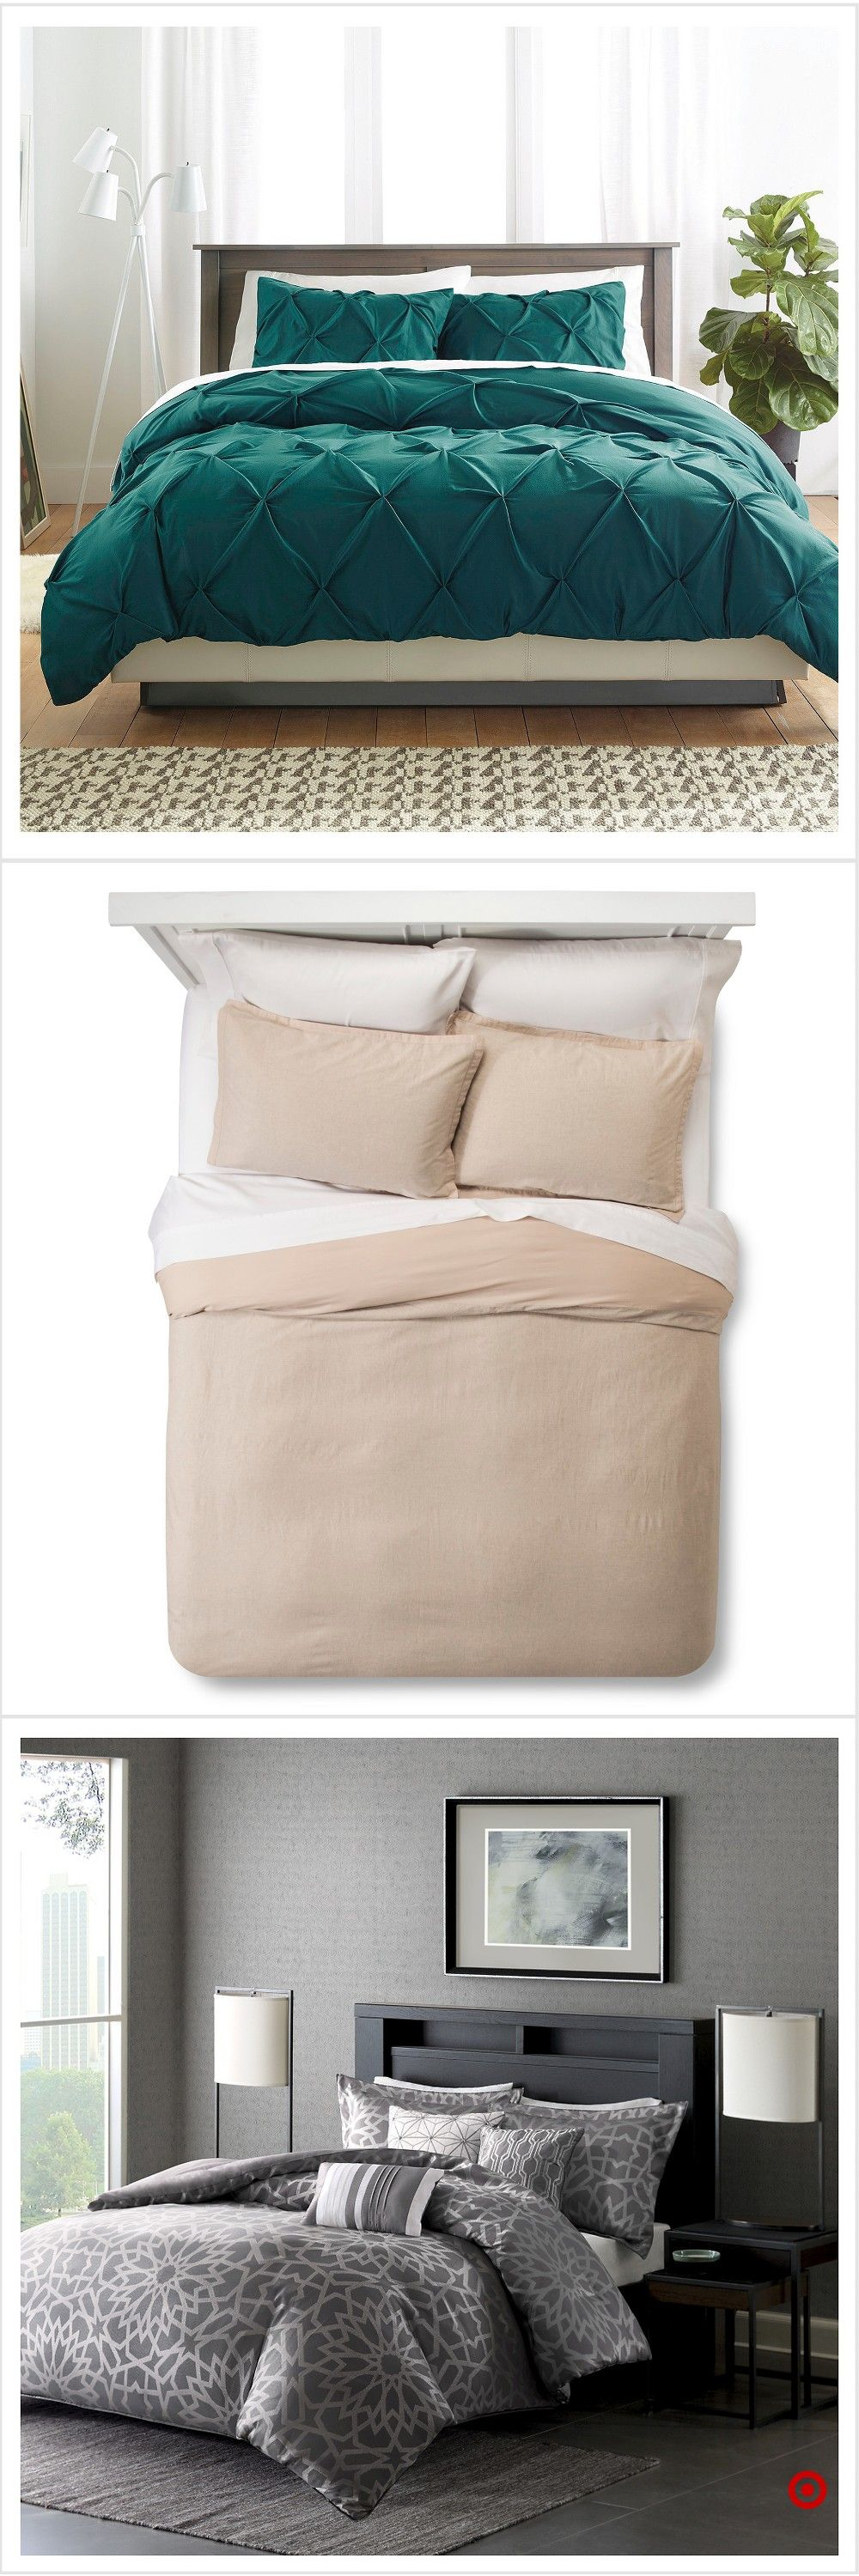 Shop Tar for duvet cover set you will love at great low prices